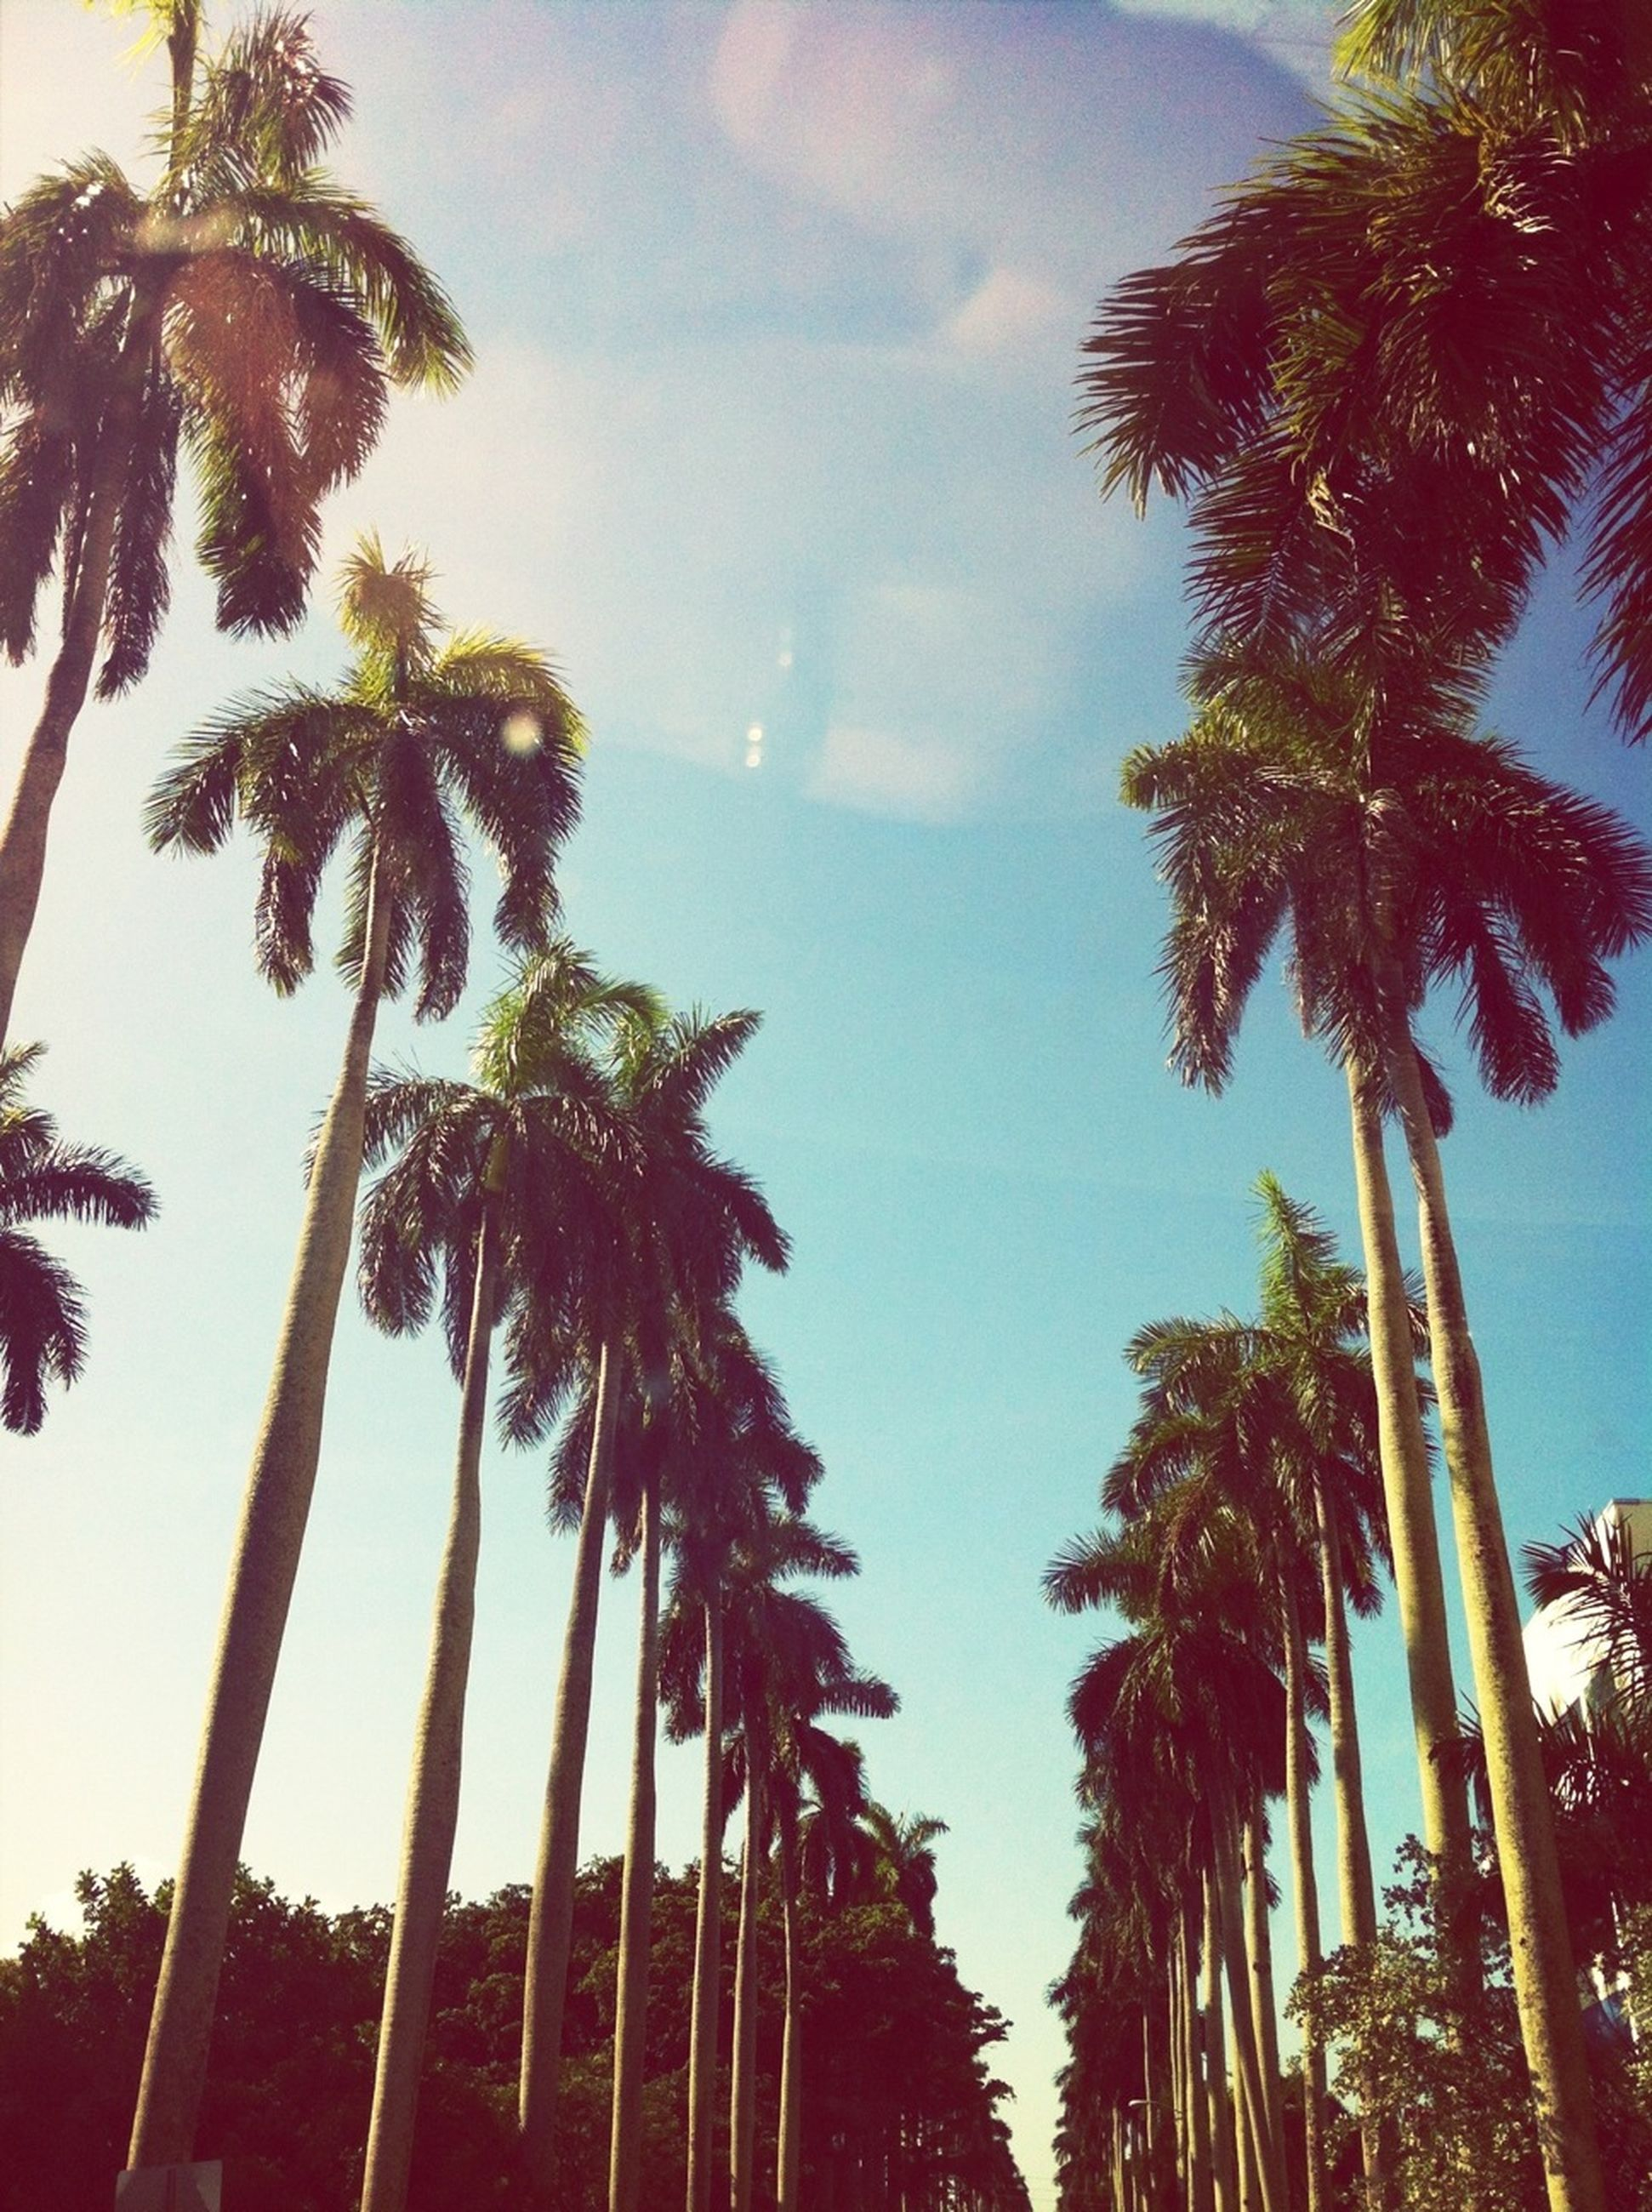 palm tree, tree, low angle view, sky, growth, coconut palm tree, tree trunk, tall - high, tranquility, beauty in nature, nature, silhouette, scenics, tranquil scene, cloud - sky, tropical tree, outdoors, no people, tropical climate, blue